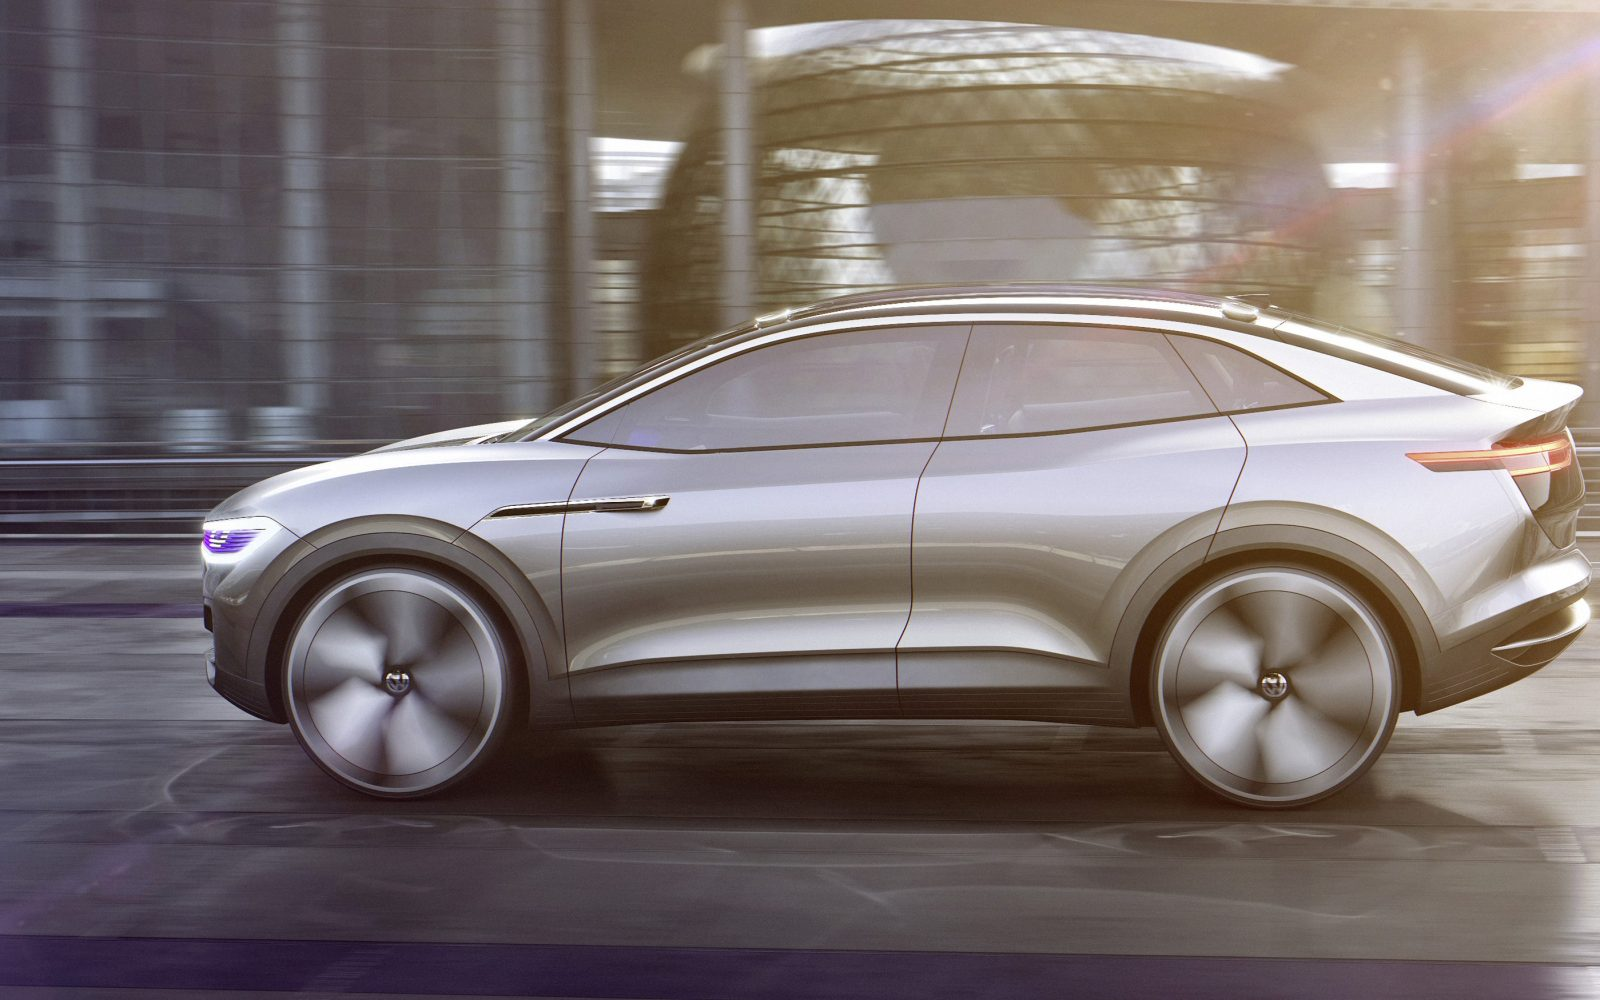 VW ID Crozz Electric Crossover SUV: Design, Release >> Vw Unveils New Crossover All Electric Id Concept 300 Miles Of